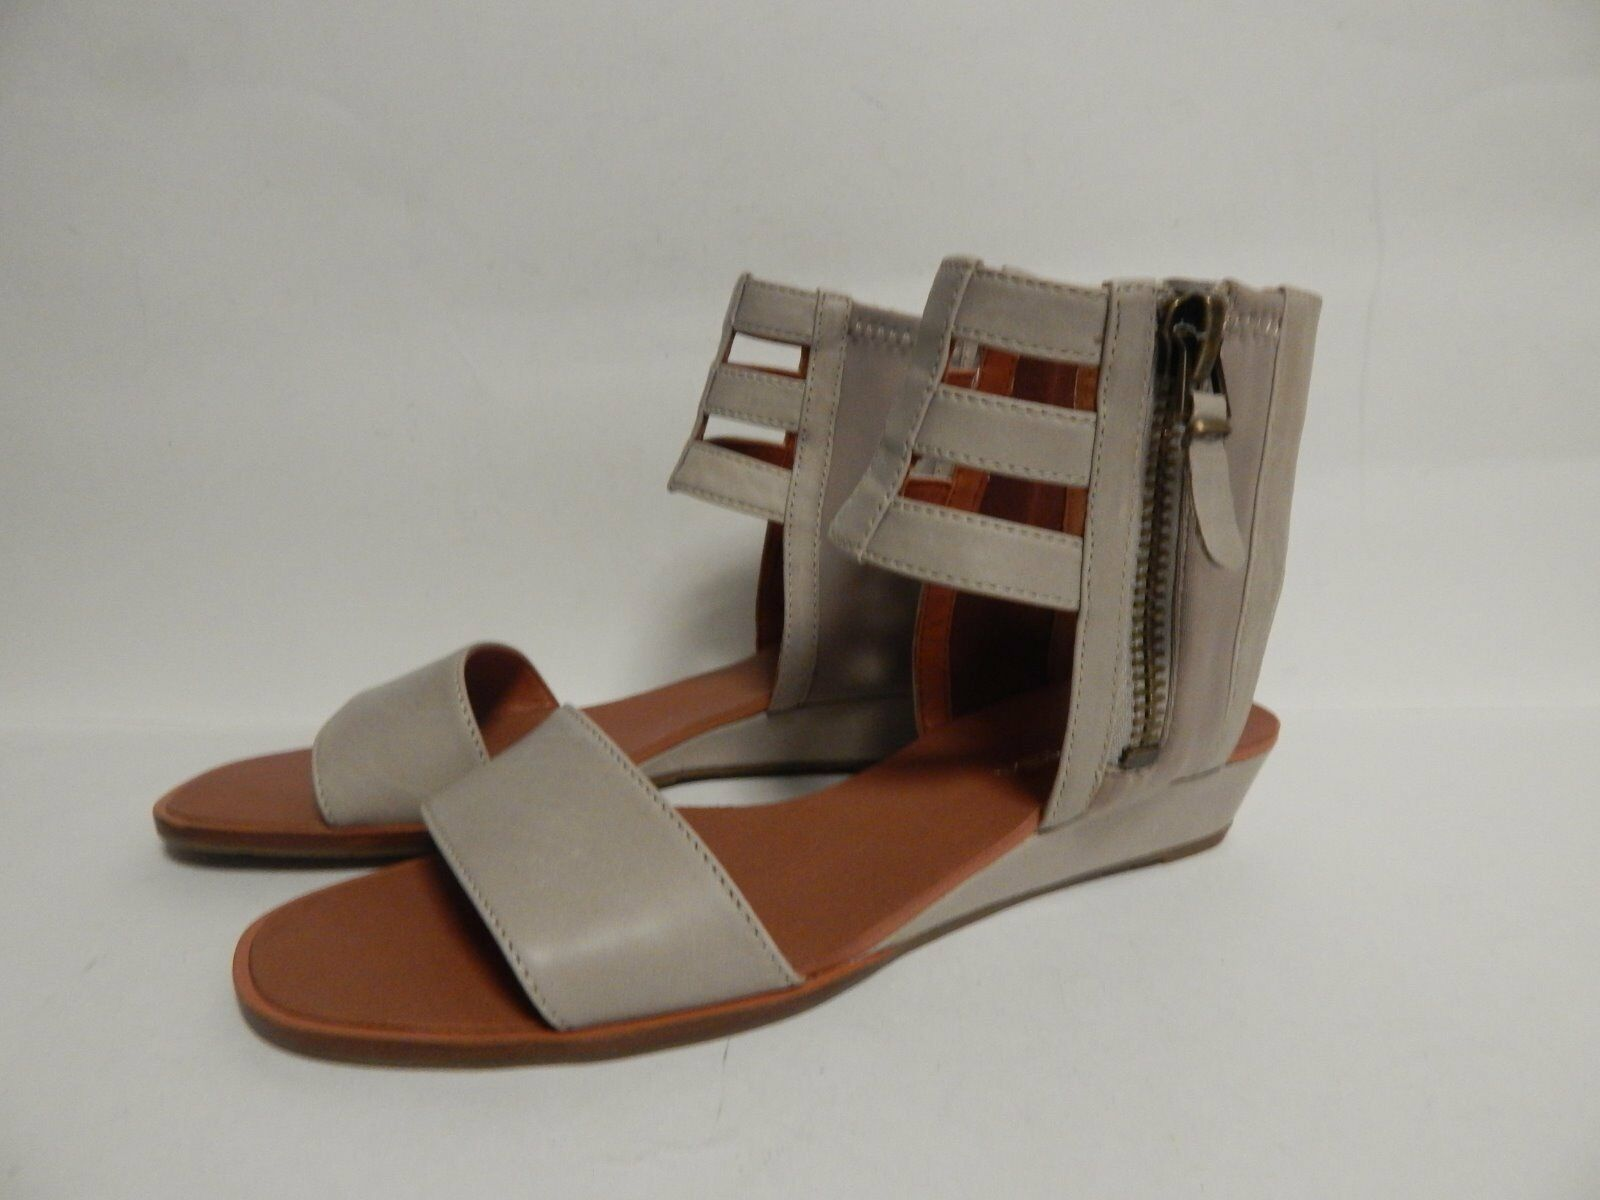 Via Spiga Patrice Caged Sandals 7.5 M Taupe Leather  New with Box